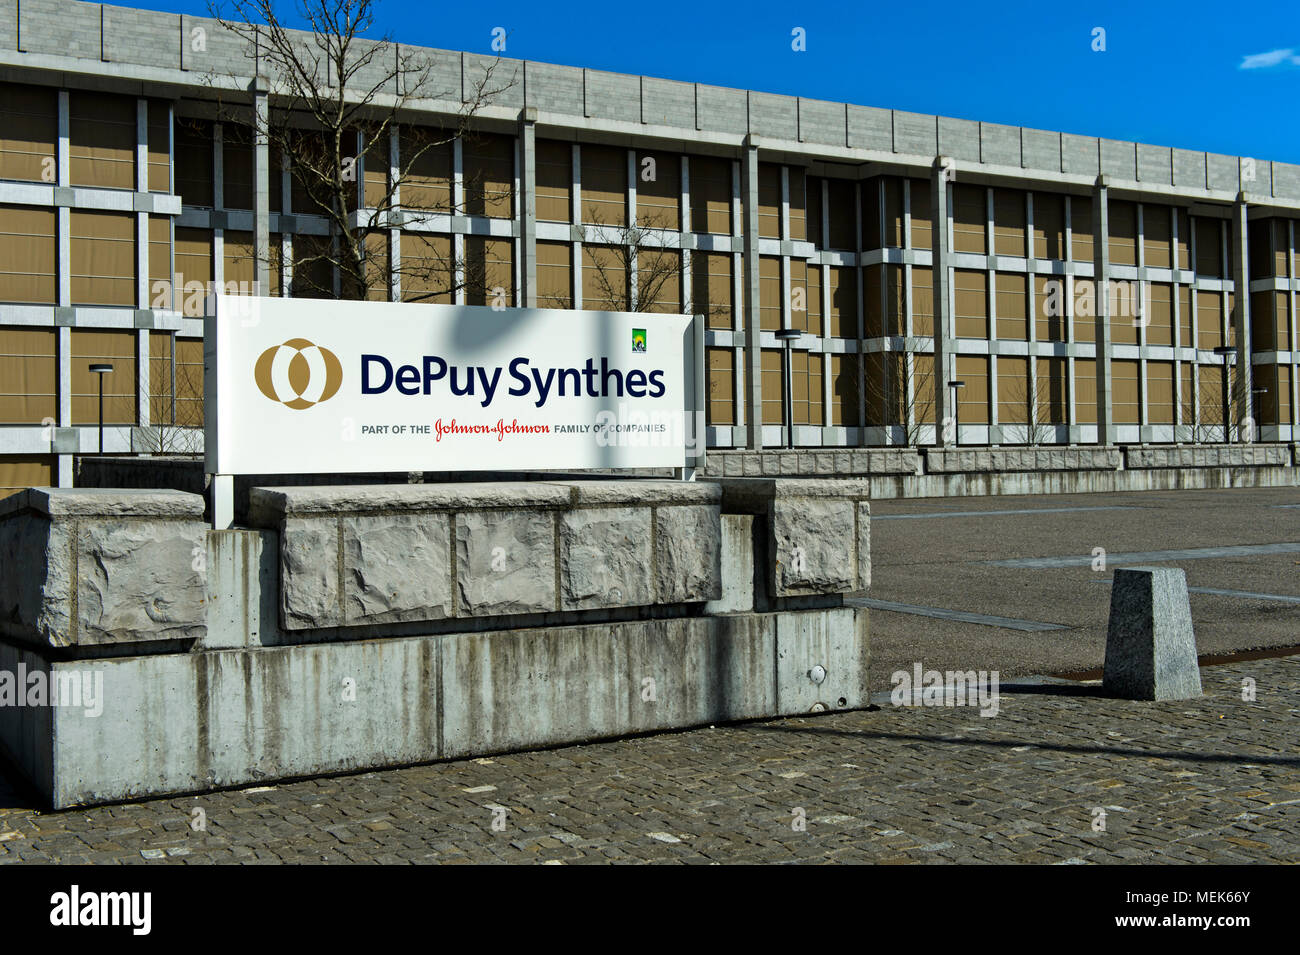 European headquarters of DePuy Synthes, part of the Johnson & Johnson Medical Devices Companies, Zuchwil, Switzerland - Stock Image